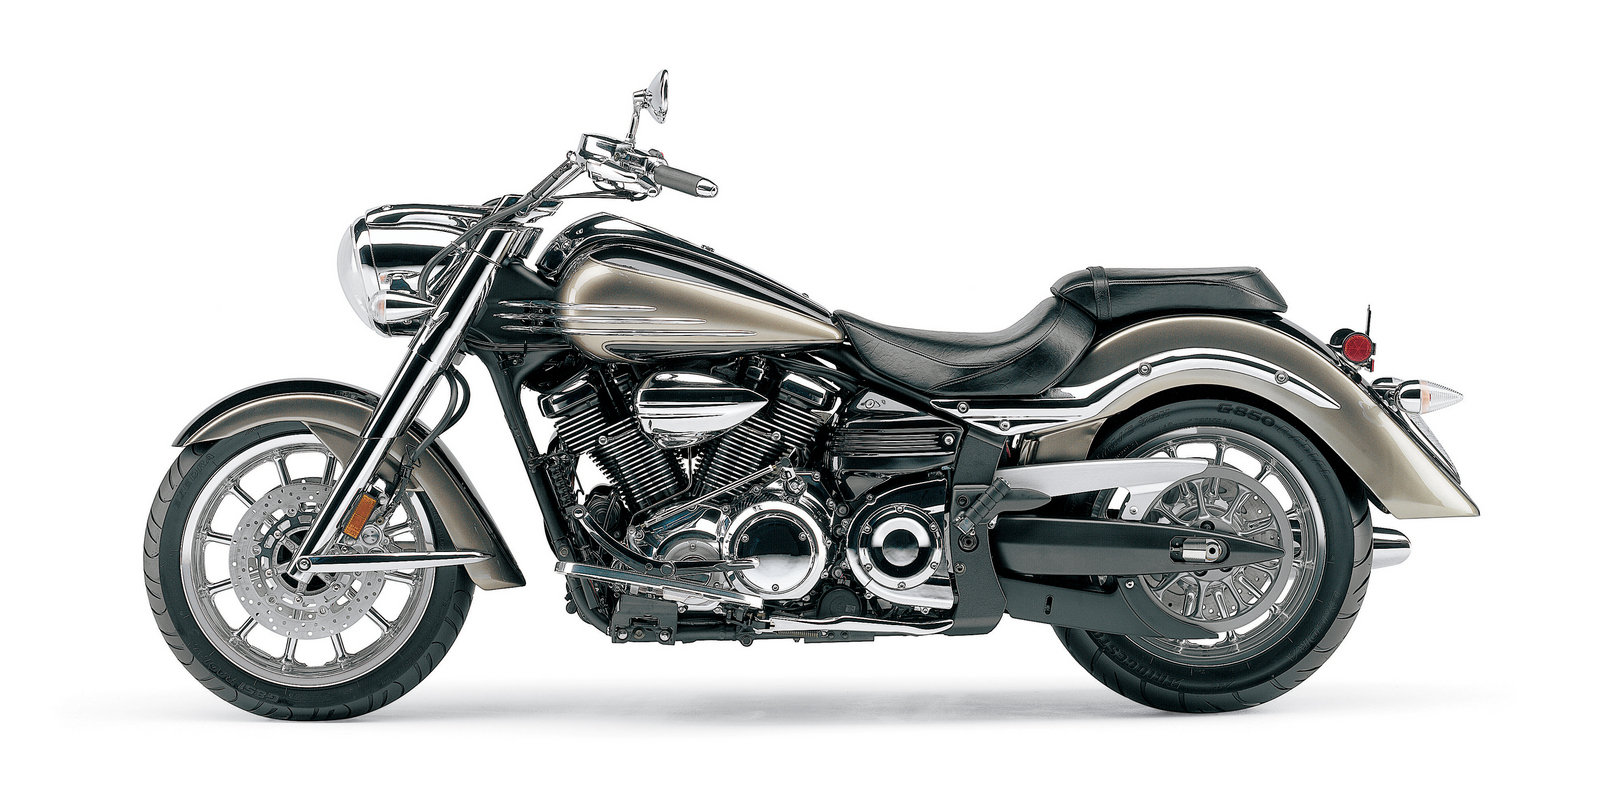 2006 yamaha roadliner s picture 46320 motorcycle for 2006 yamaha stratoliner review